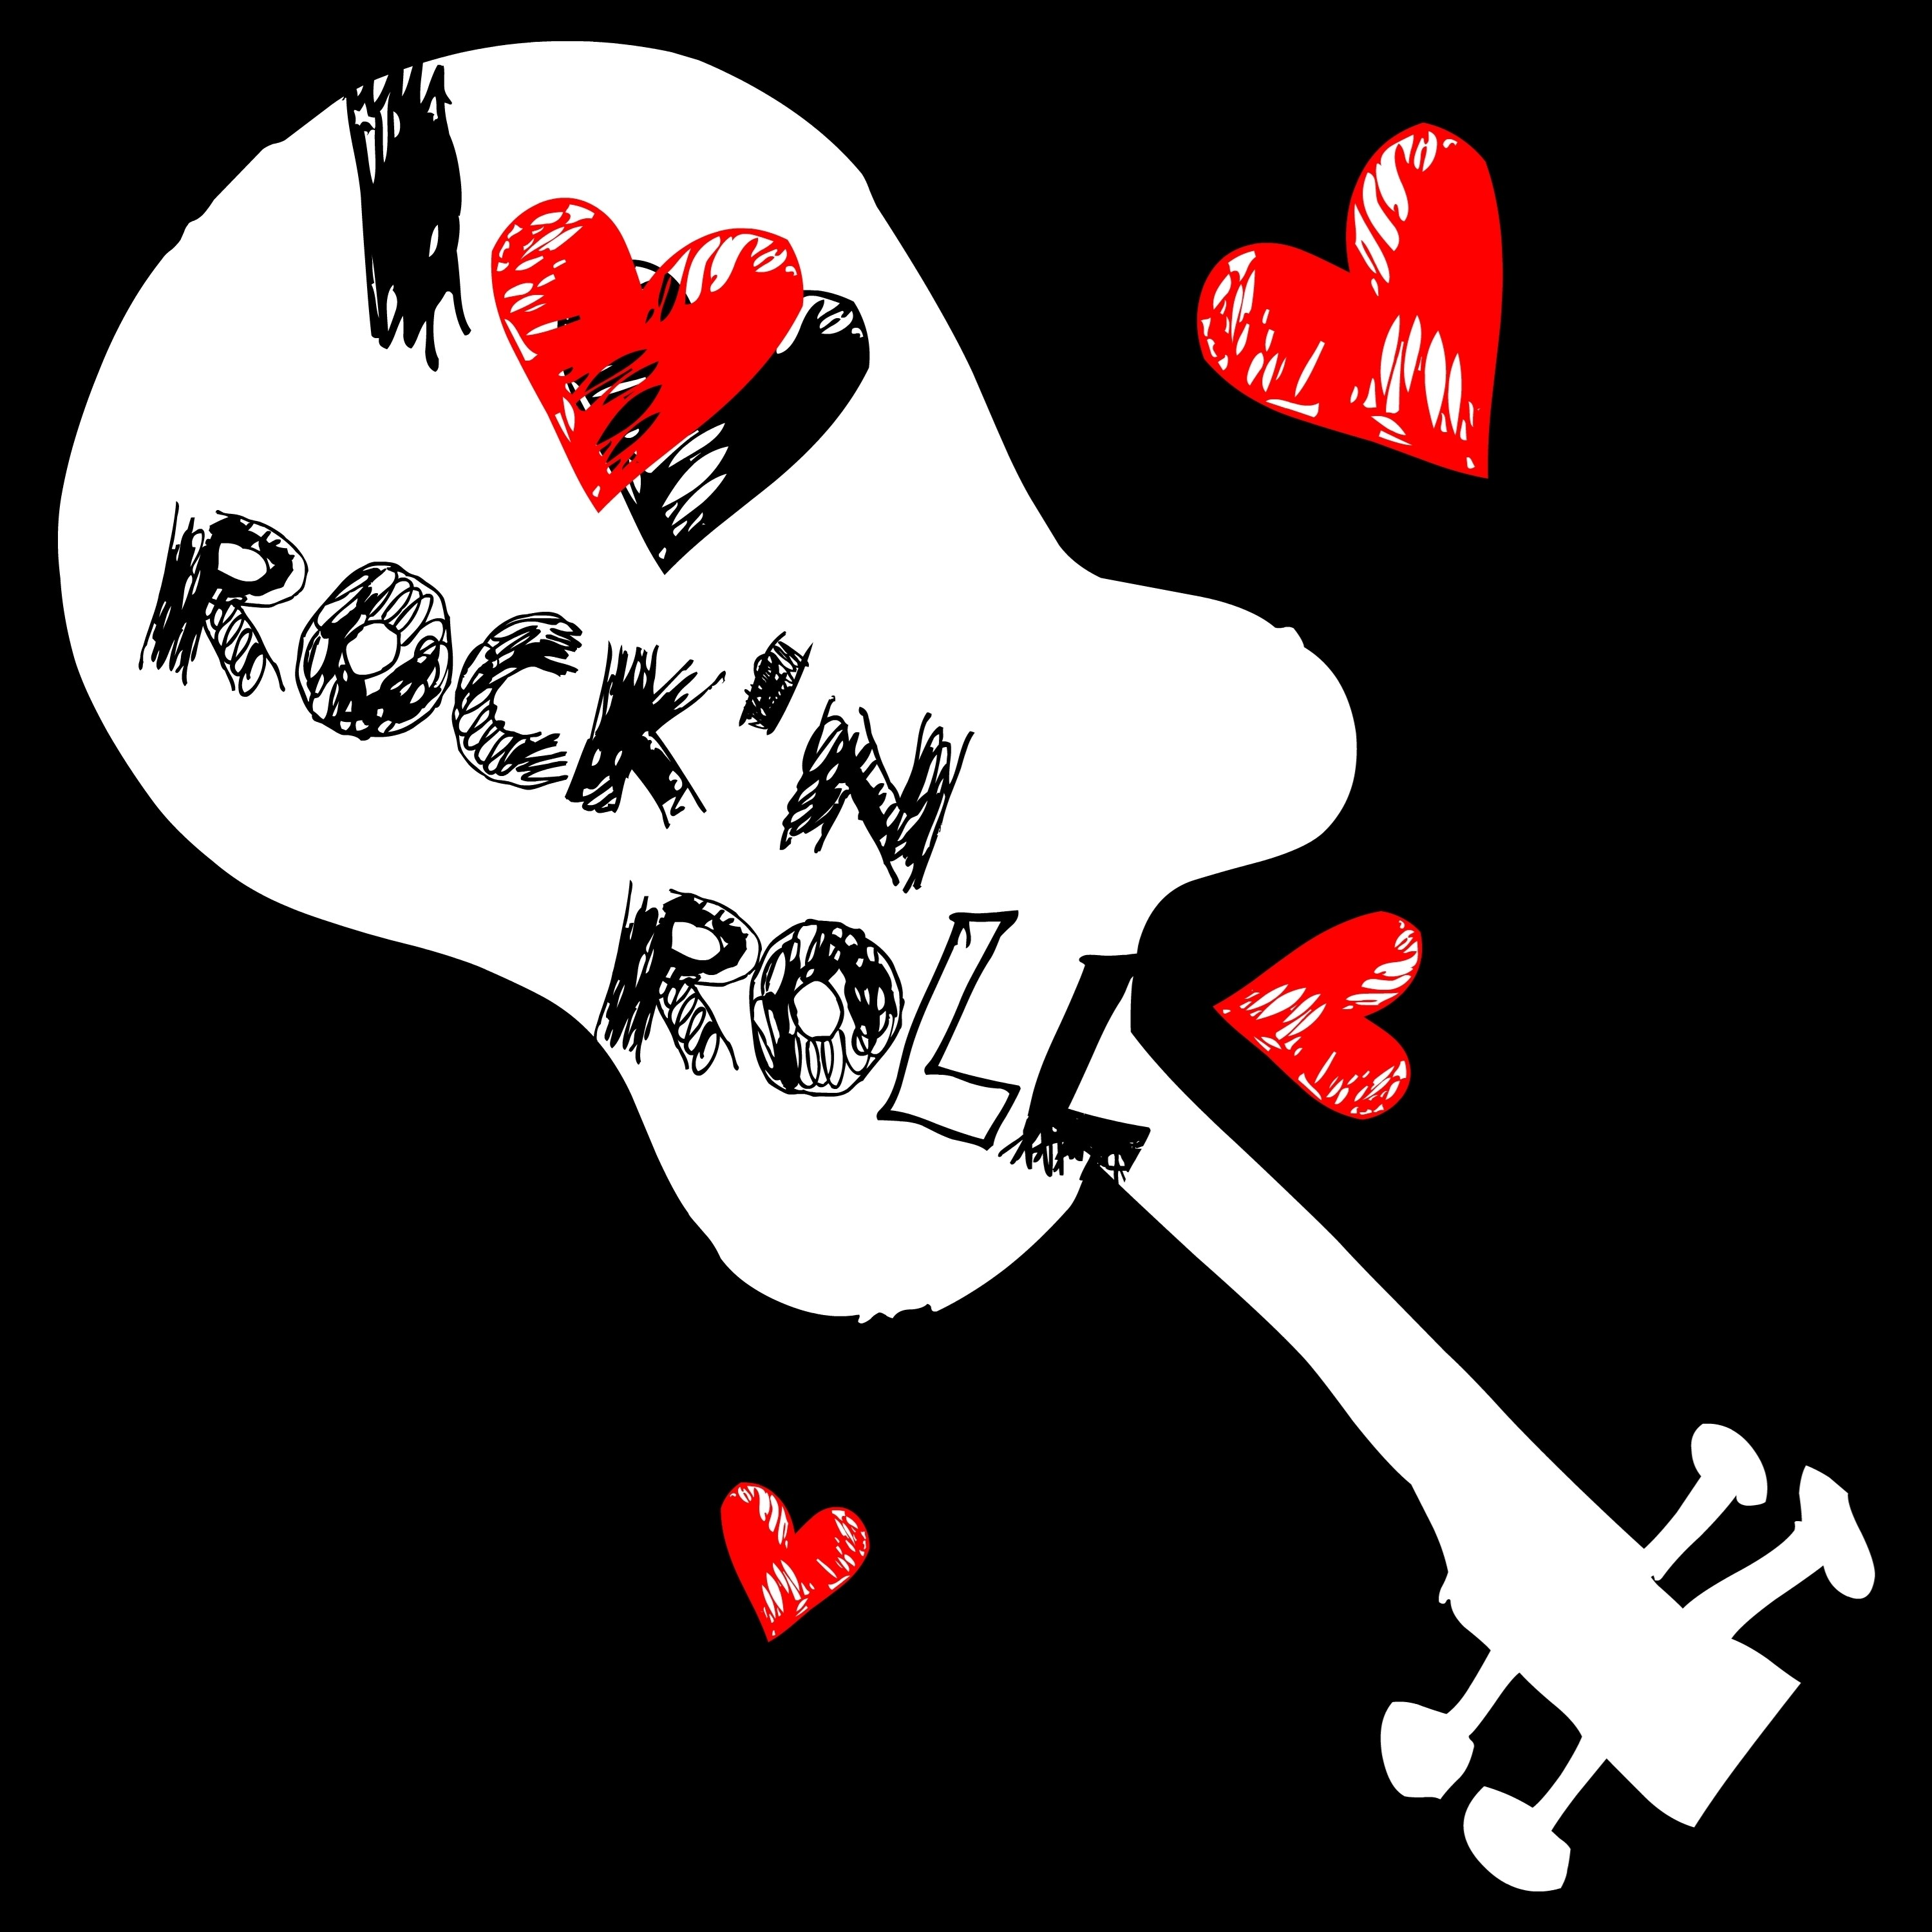 Welcome to Rock N Roll Tattoo amp Piercing the best tattoo shop in Raleigh! I got the best tattoo of my life at Rock n Roll Tattoo Jason was amazing I love my new ink!